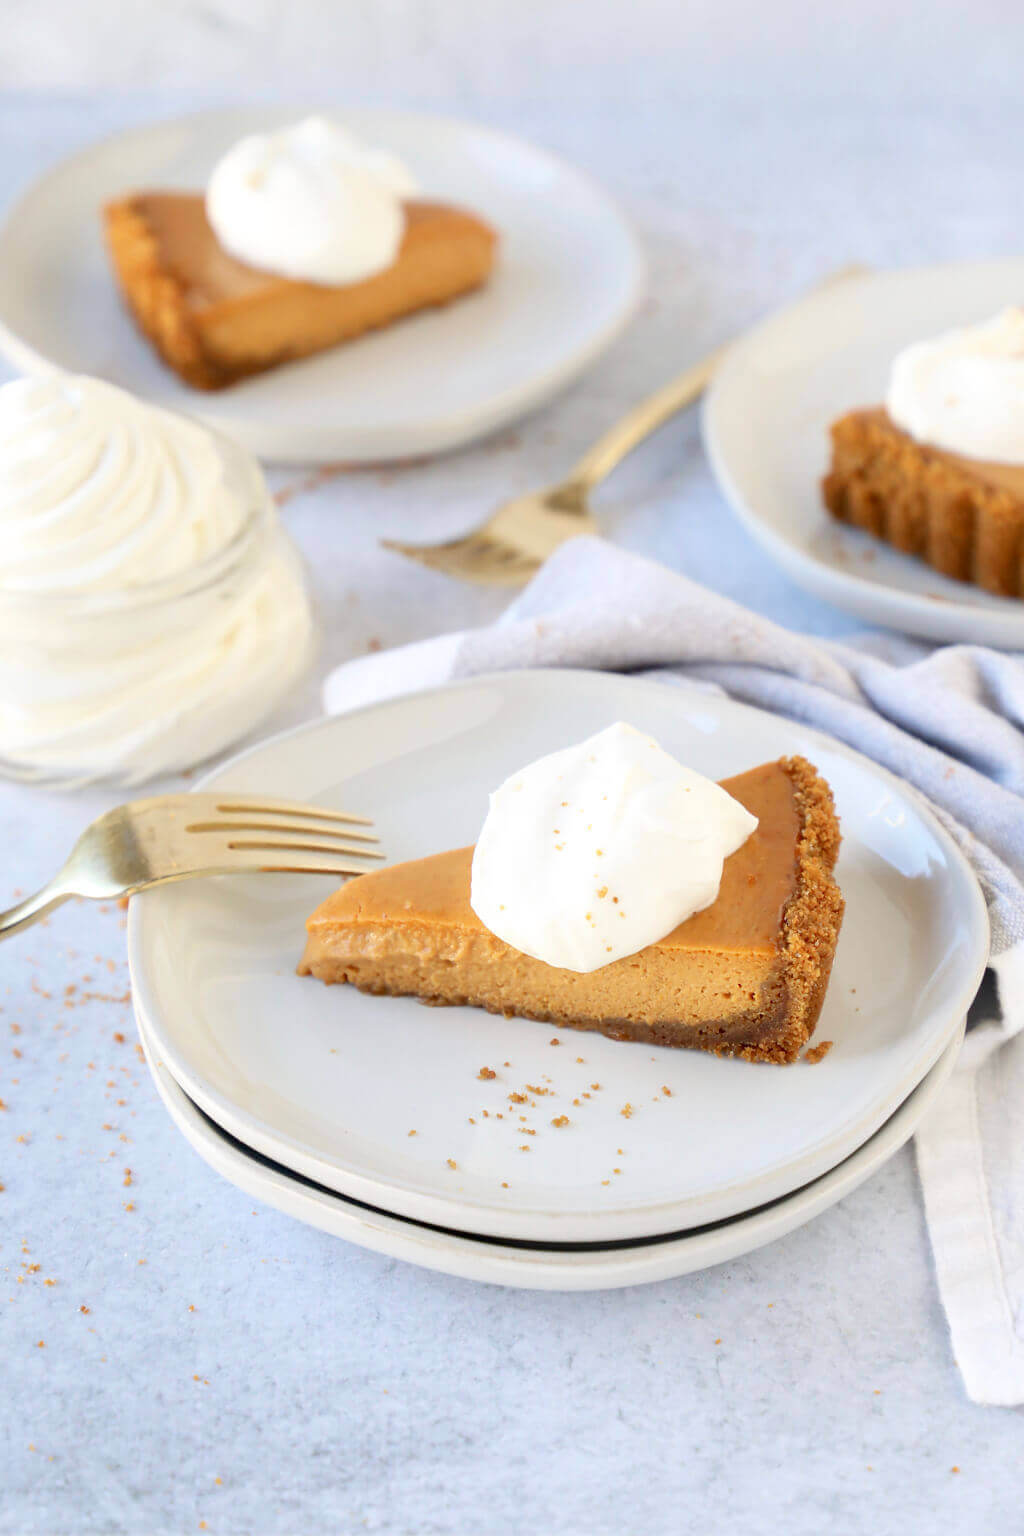 A slice of pumpkin gingersnap tart topped with whipped cream, with a few more slices sitting in the background